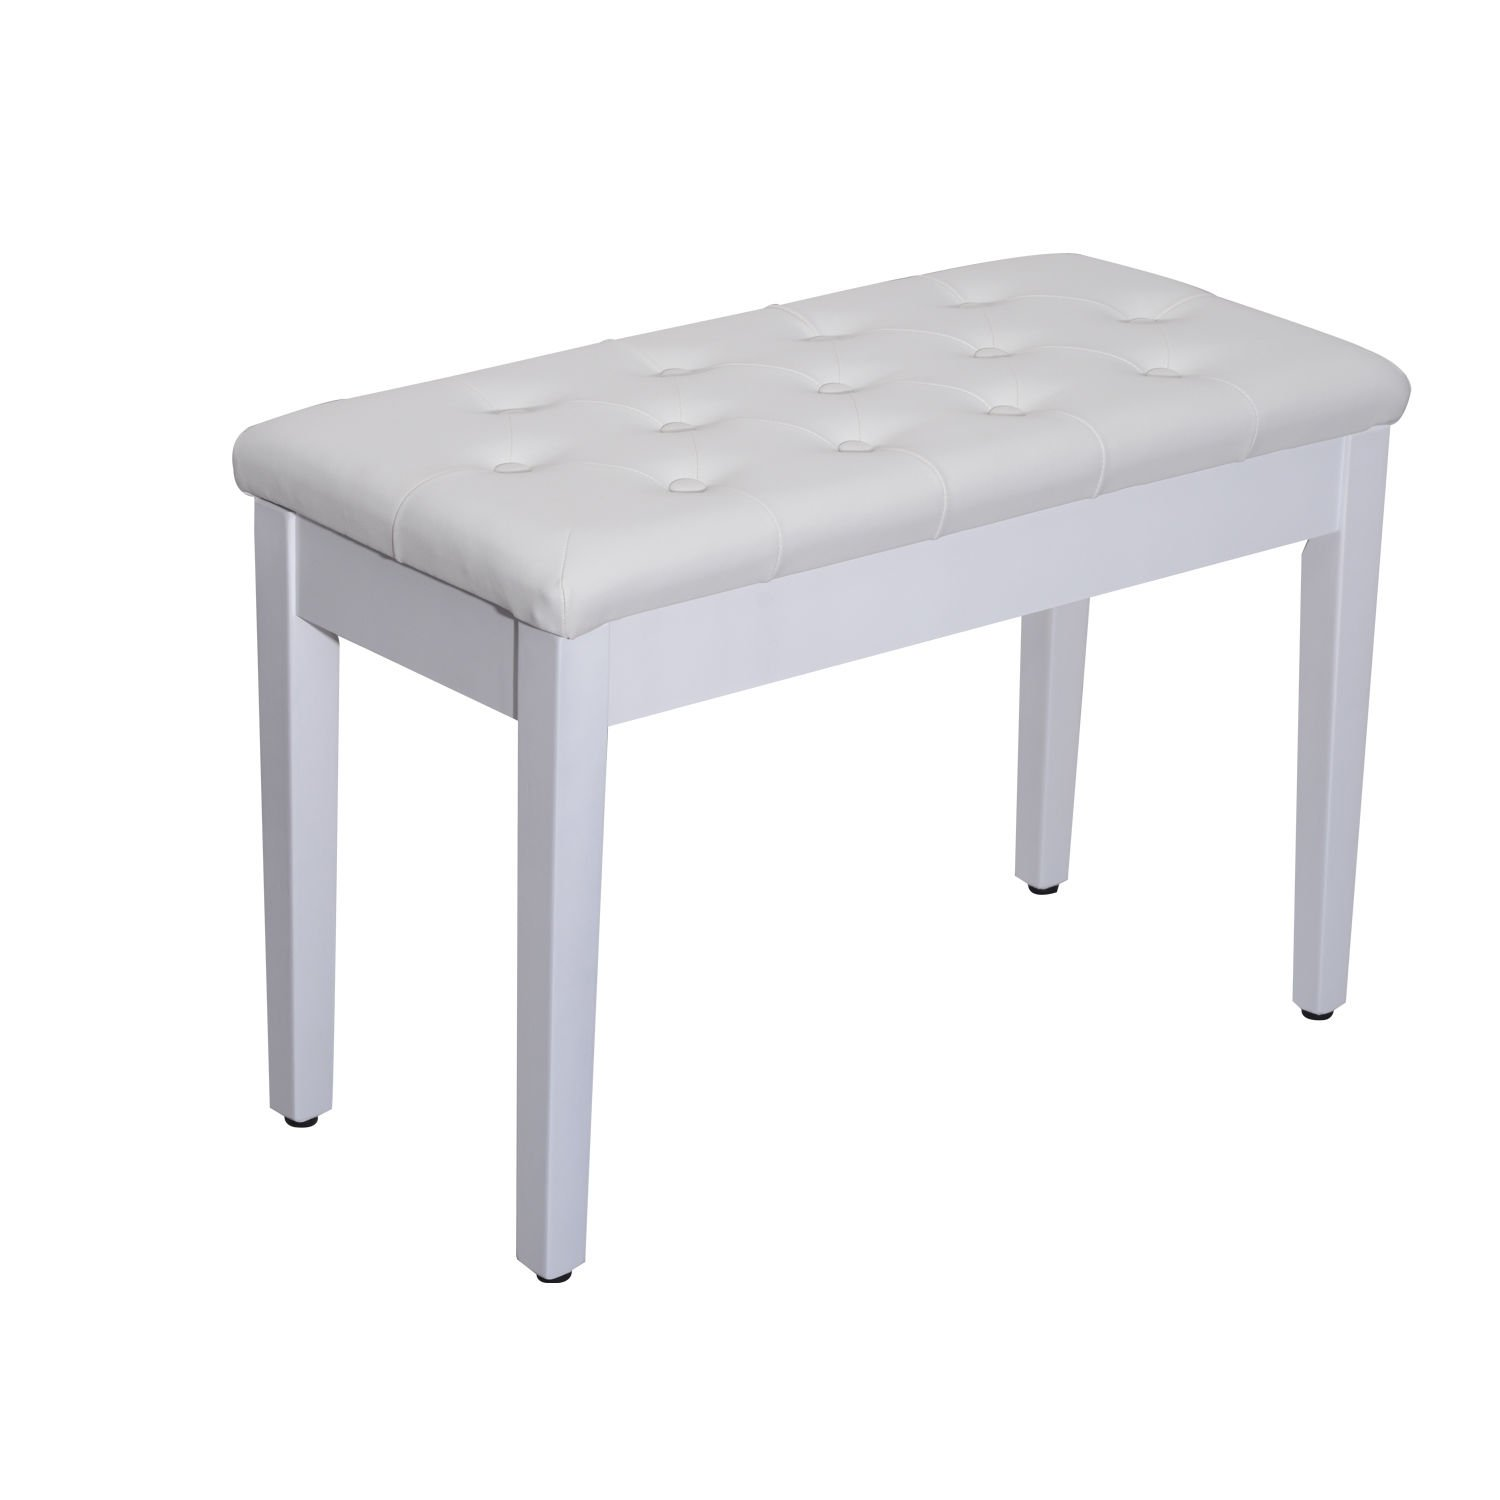 HomCom Faux Leather Padded Double / Duet Piano Bench w/ Music Storage - White by HOMCOM